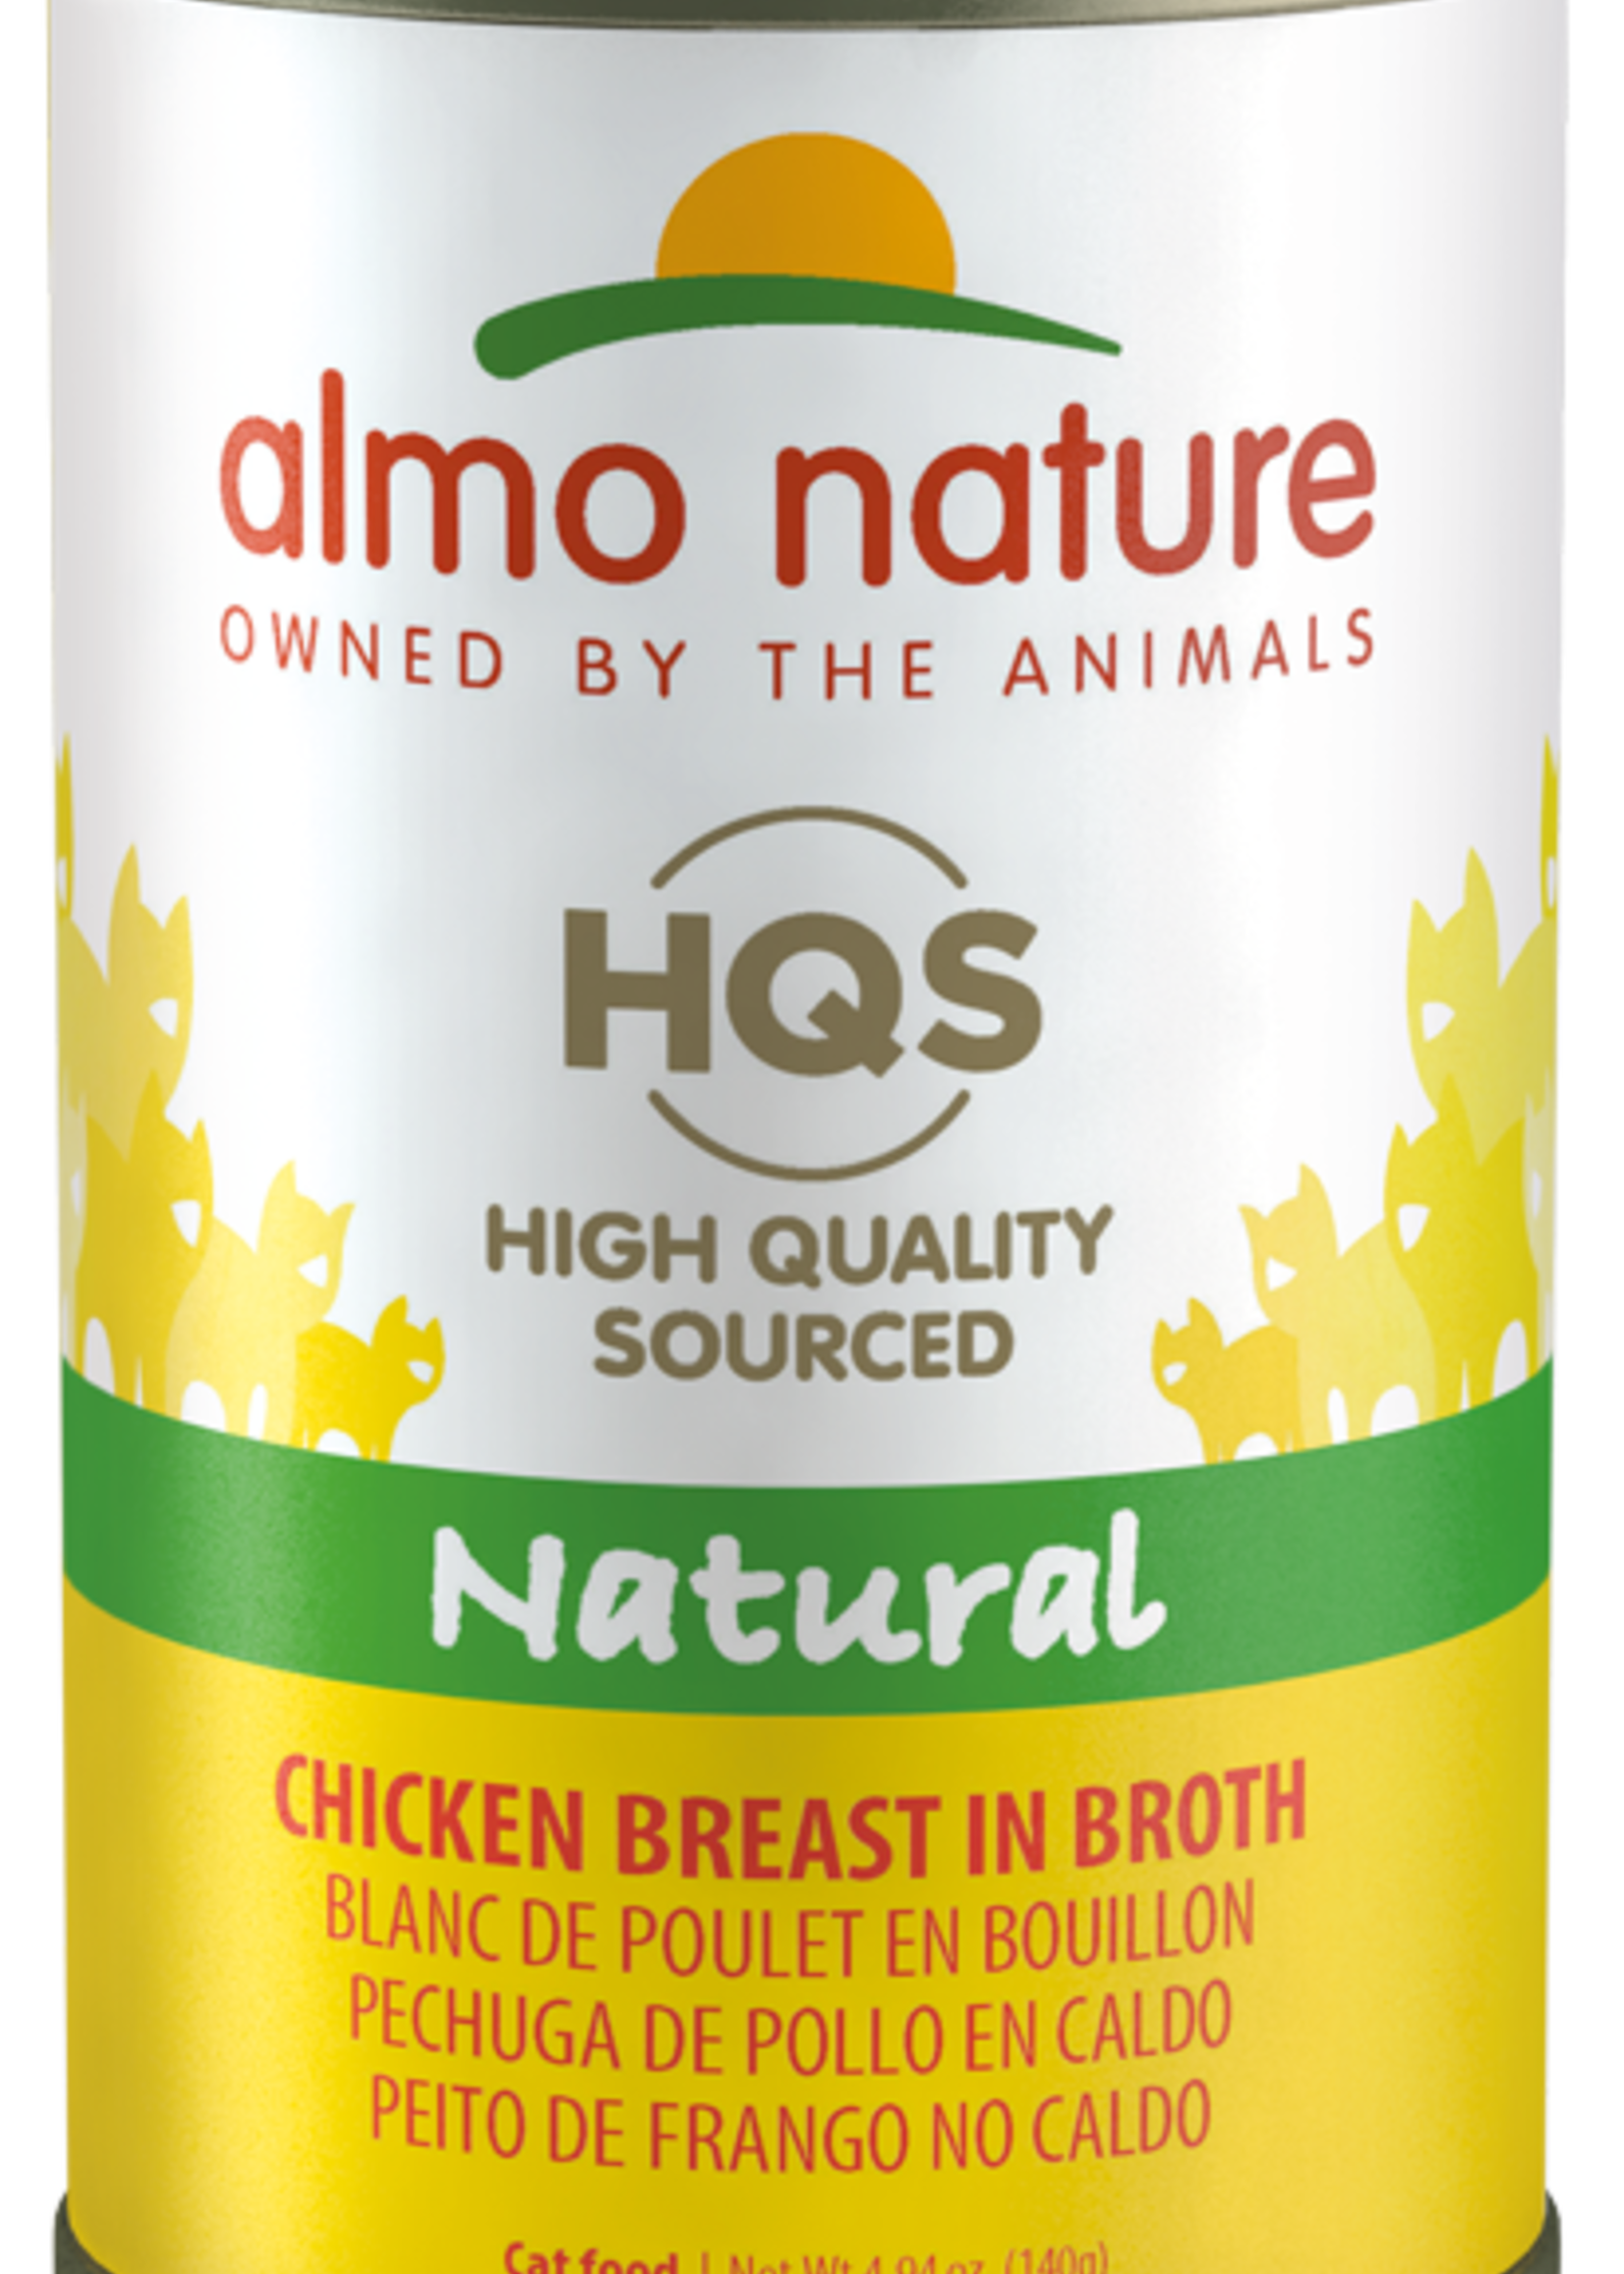 Almo Nature© Almo Nature HQS Natural Chicken Breast in Broth 140g